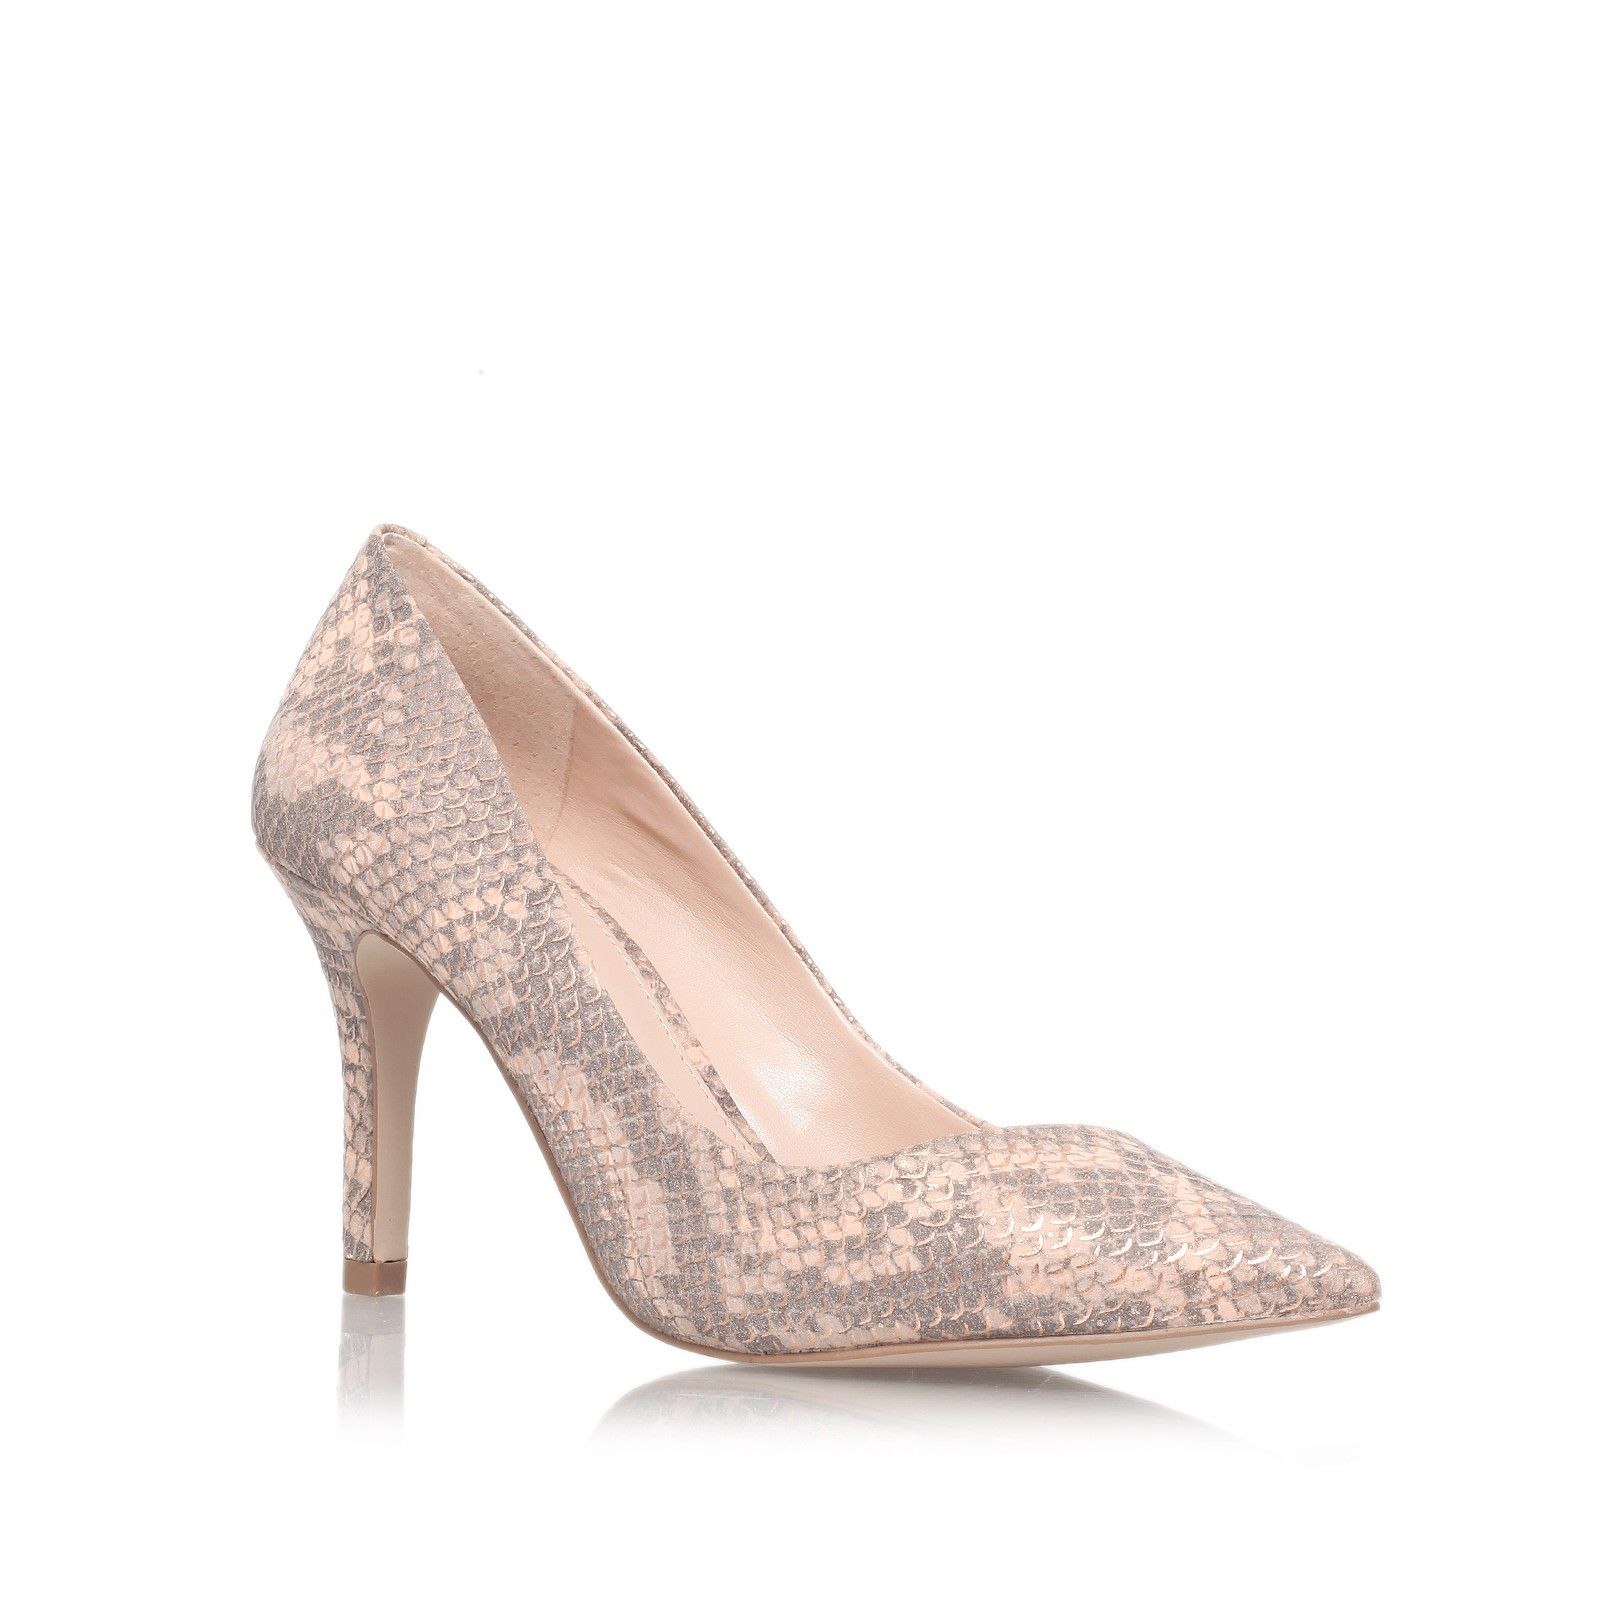 anastasia, nude shoe by carvela kurt geiger - women shoes party shoes &  occasion